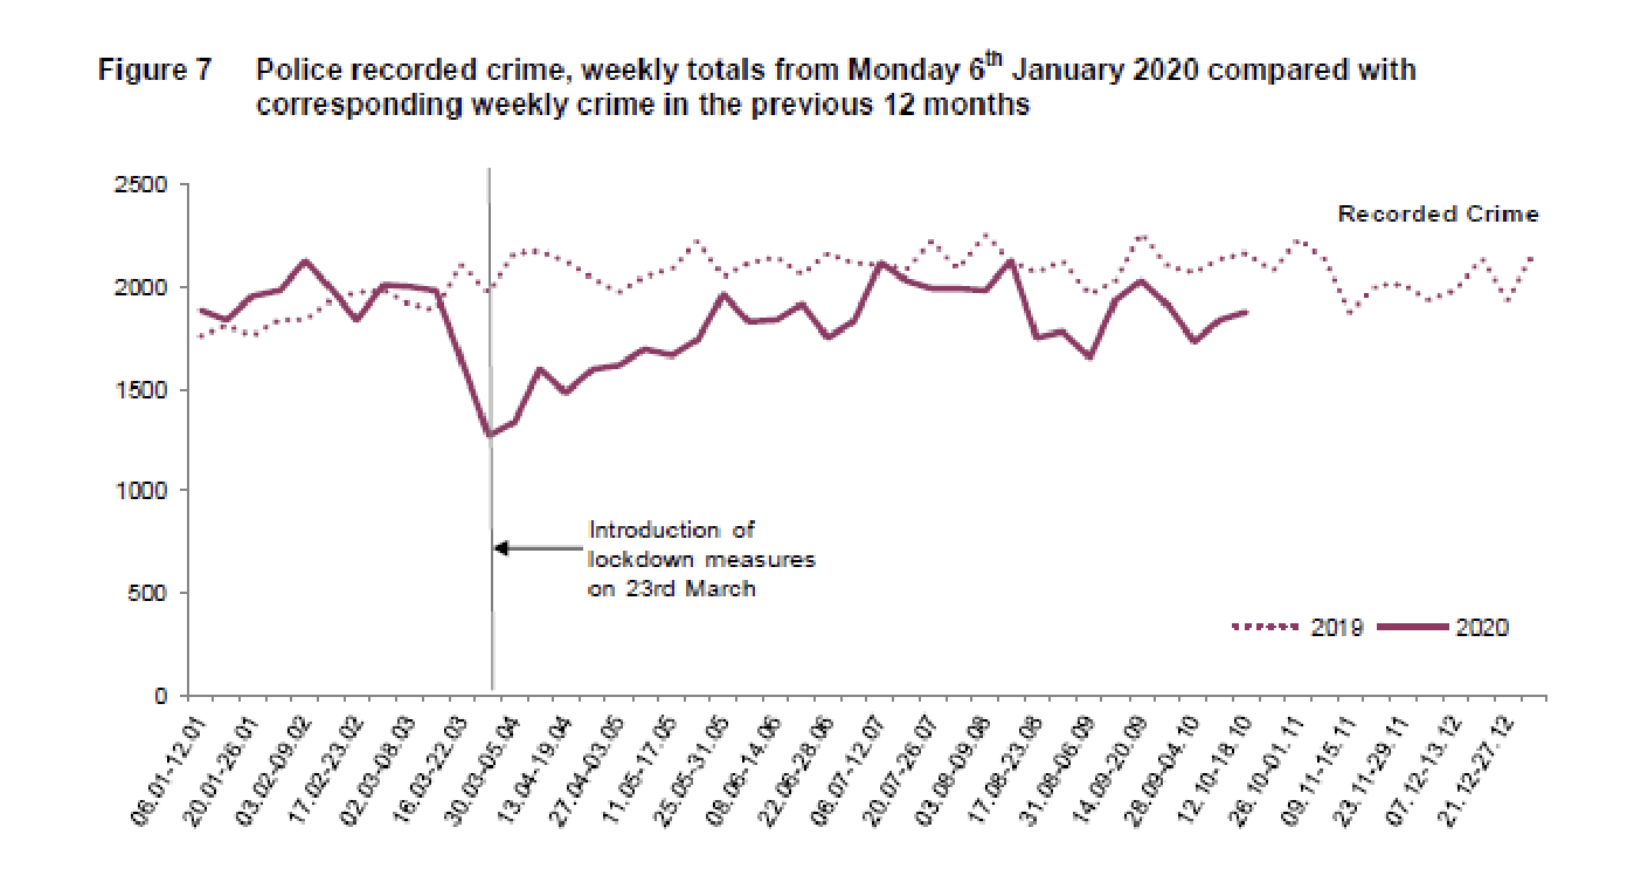 Figure 7 - Police recorded crime, weekly totals from Monday 6th January 2020 compared with corresponding weekly crime in the previous 12 months